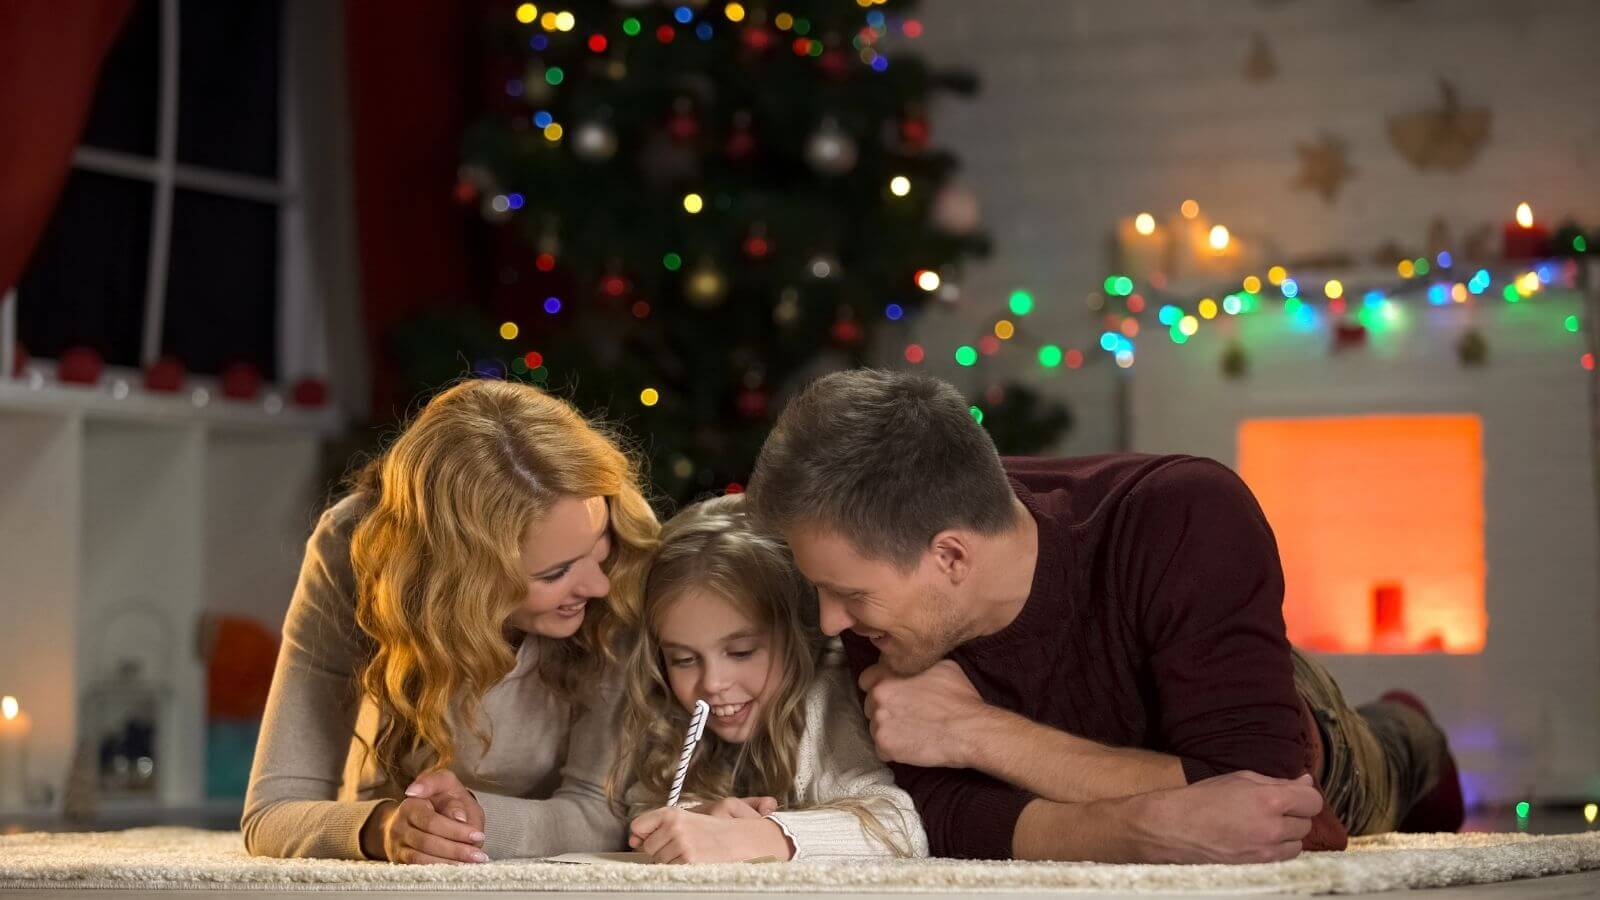 Daughter lying on the floor writing Christmas memories with parents either side and Christmas tree in the background